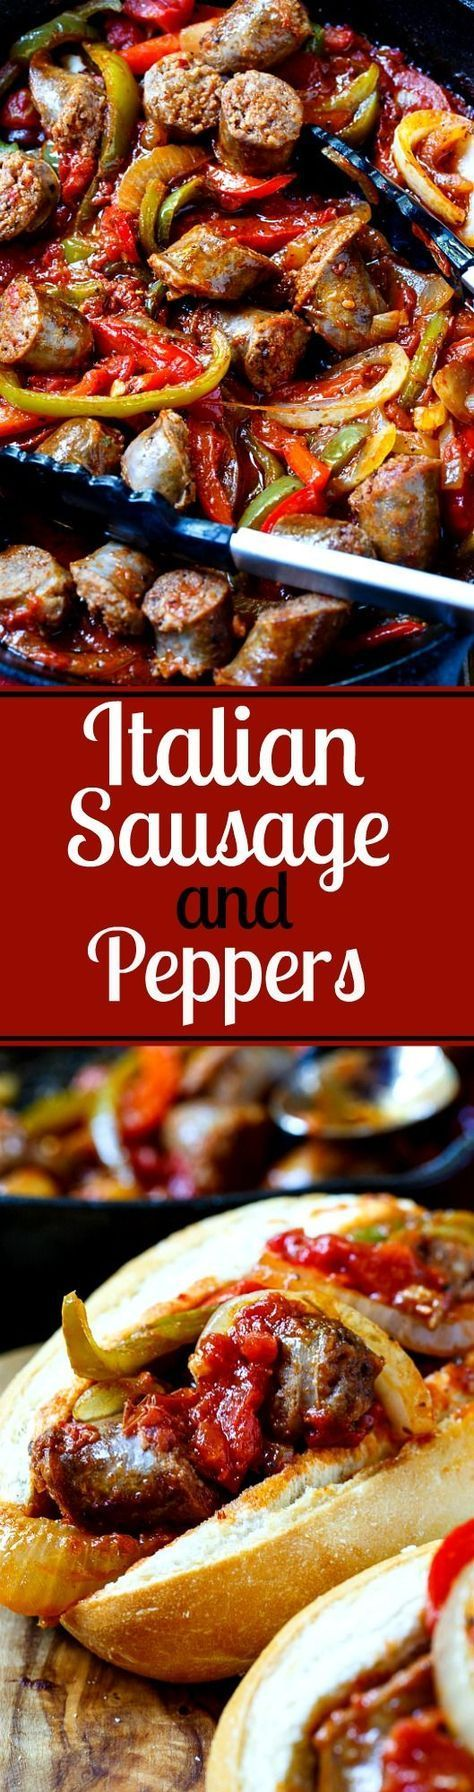 Italian Sausage and Peppers makes an easy weeknight meal!